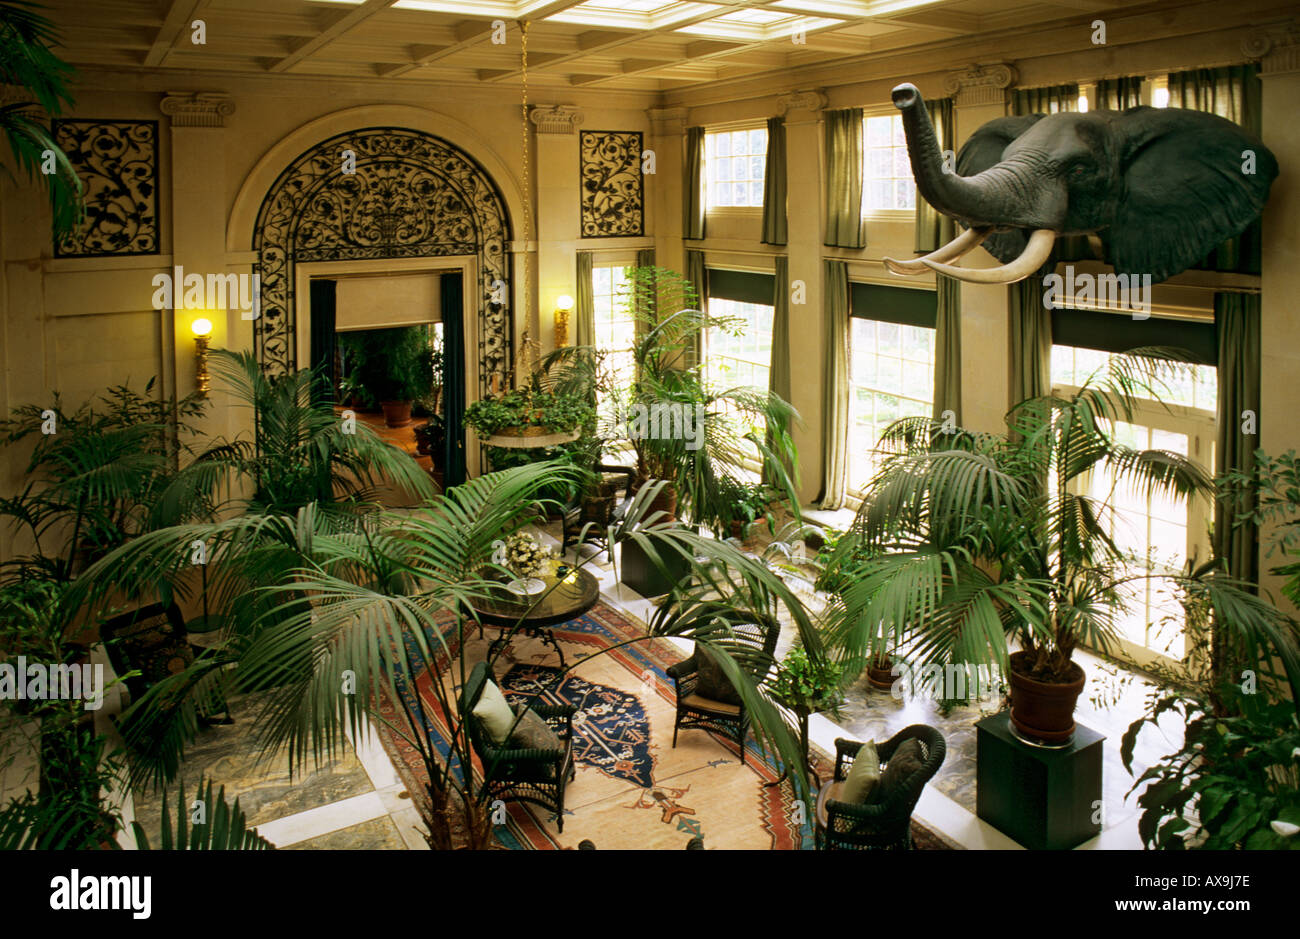 Conservatory With Elephant Head Trophy George Eastman House And Museum  Rochester New York State USA